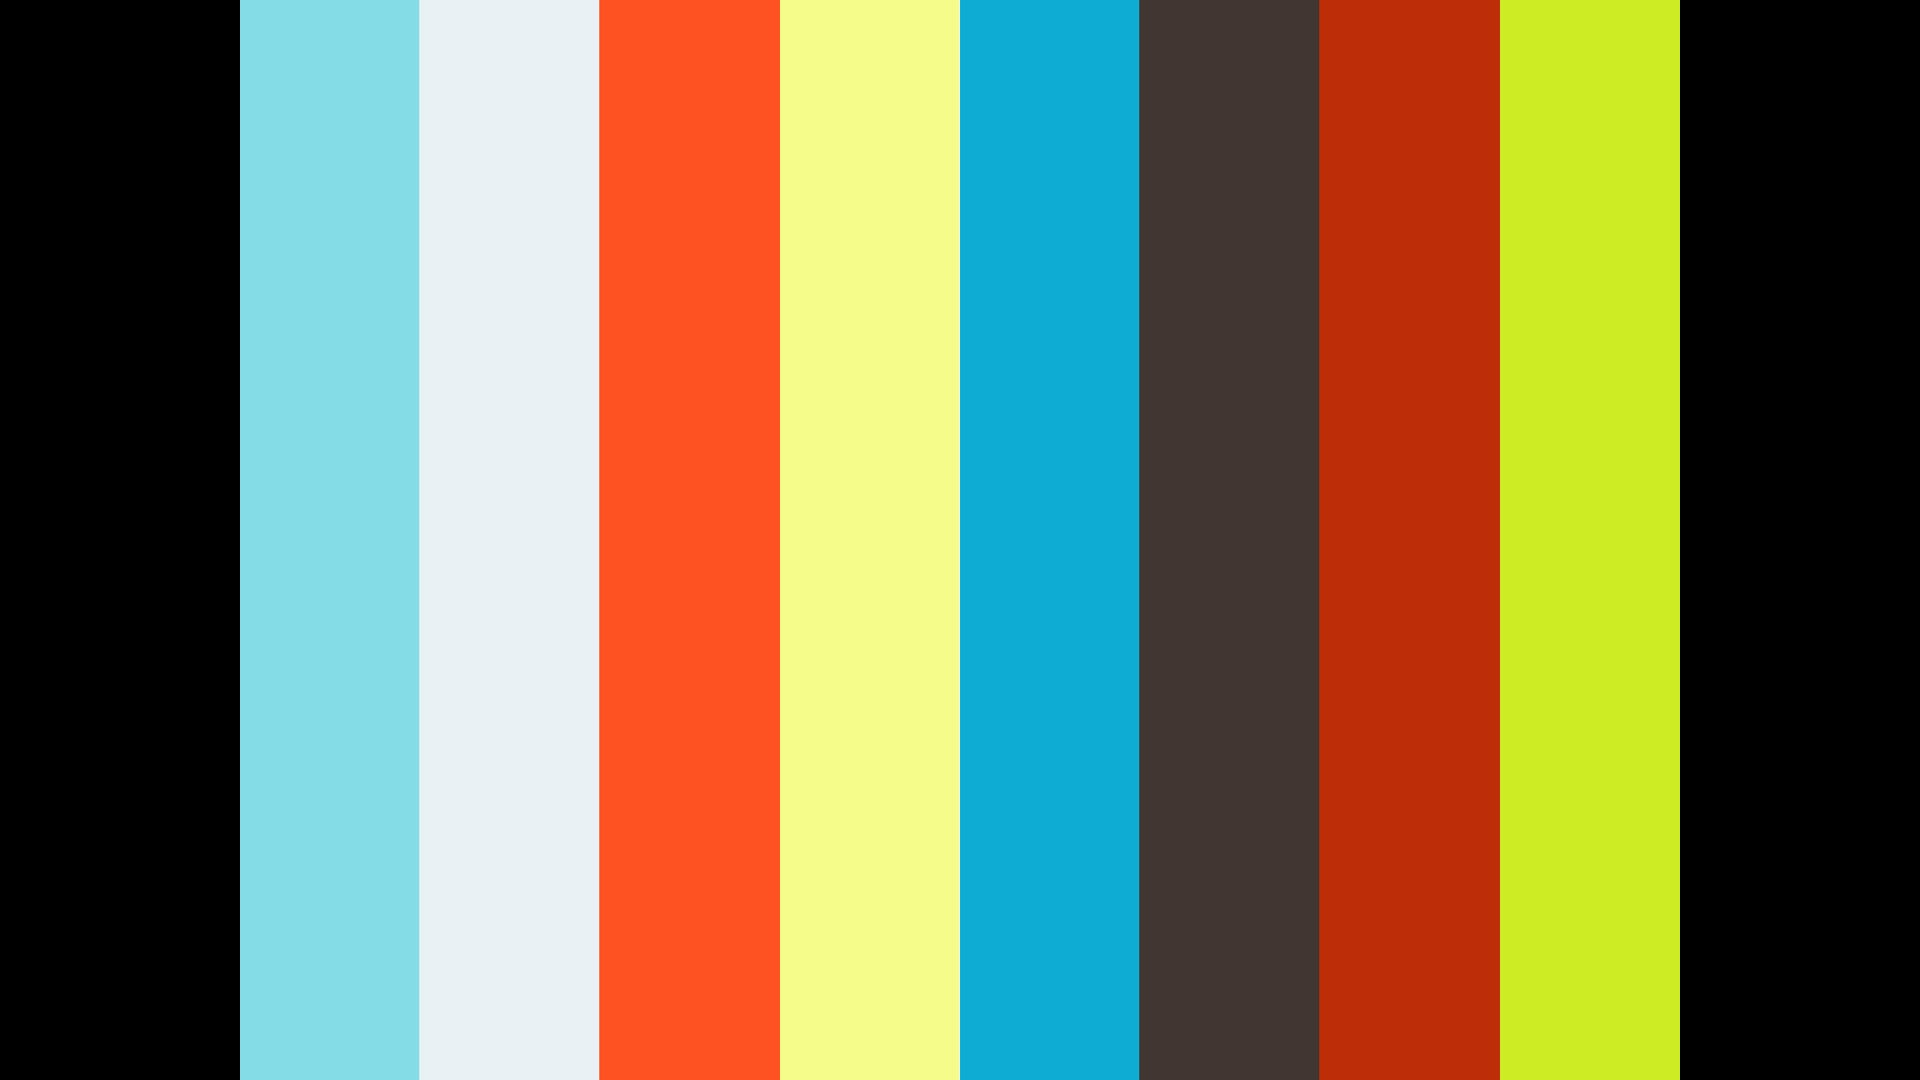 Talk by Christiane Frey (Panel III)